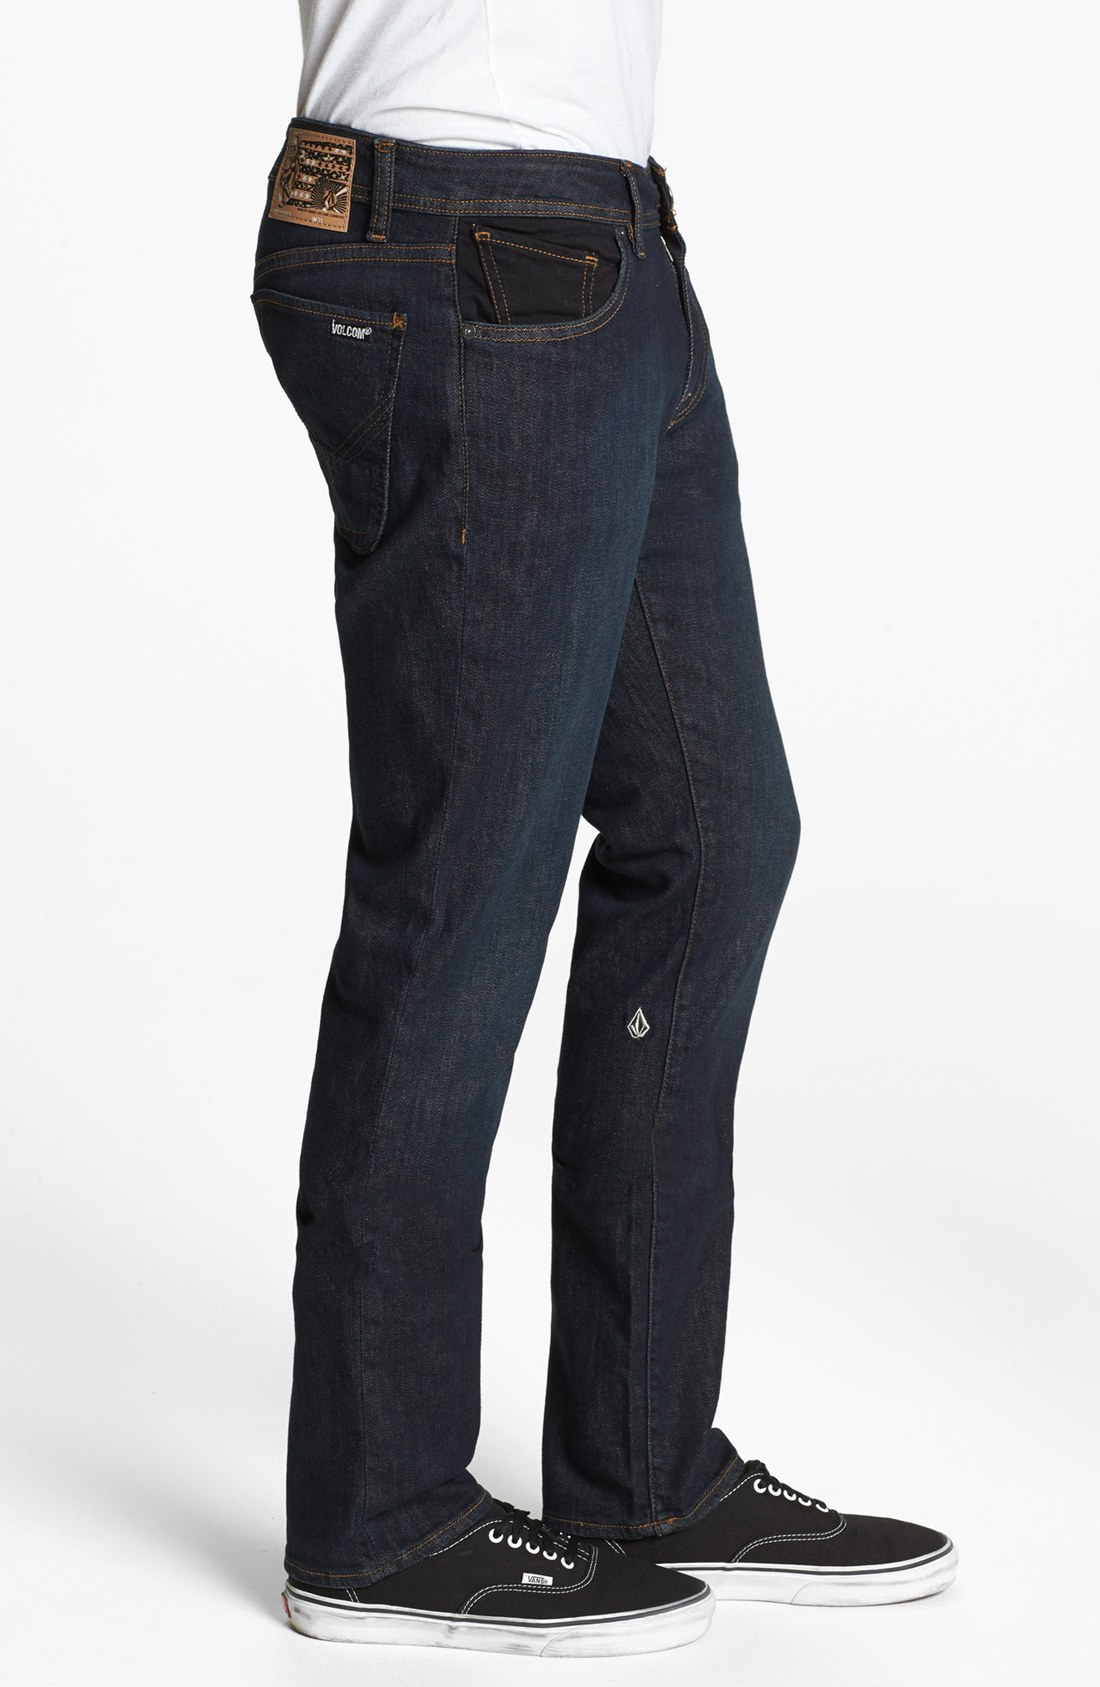 Volcom Men's 2x4 Stretch Denim Jean, ATB, The 2x4 is Volcom slimmest fit denim. This skinny jean is comfortably tight in the legs and waist with a 14 inch opening at the ankle and comes in .